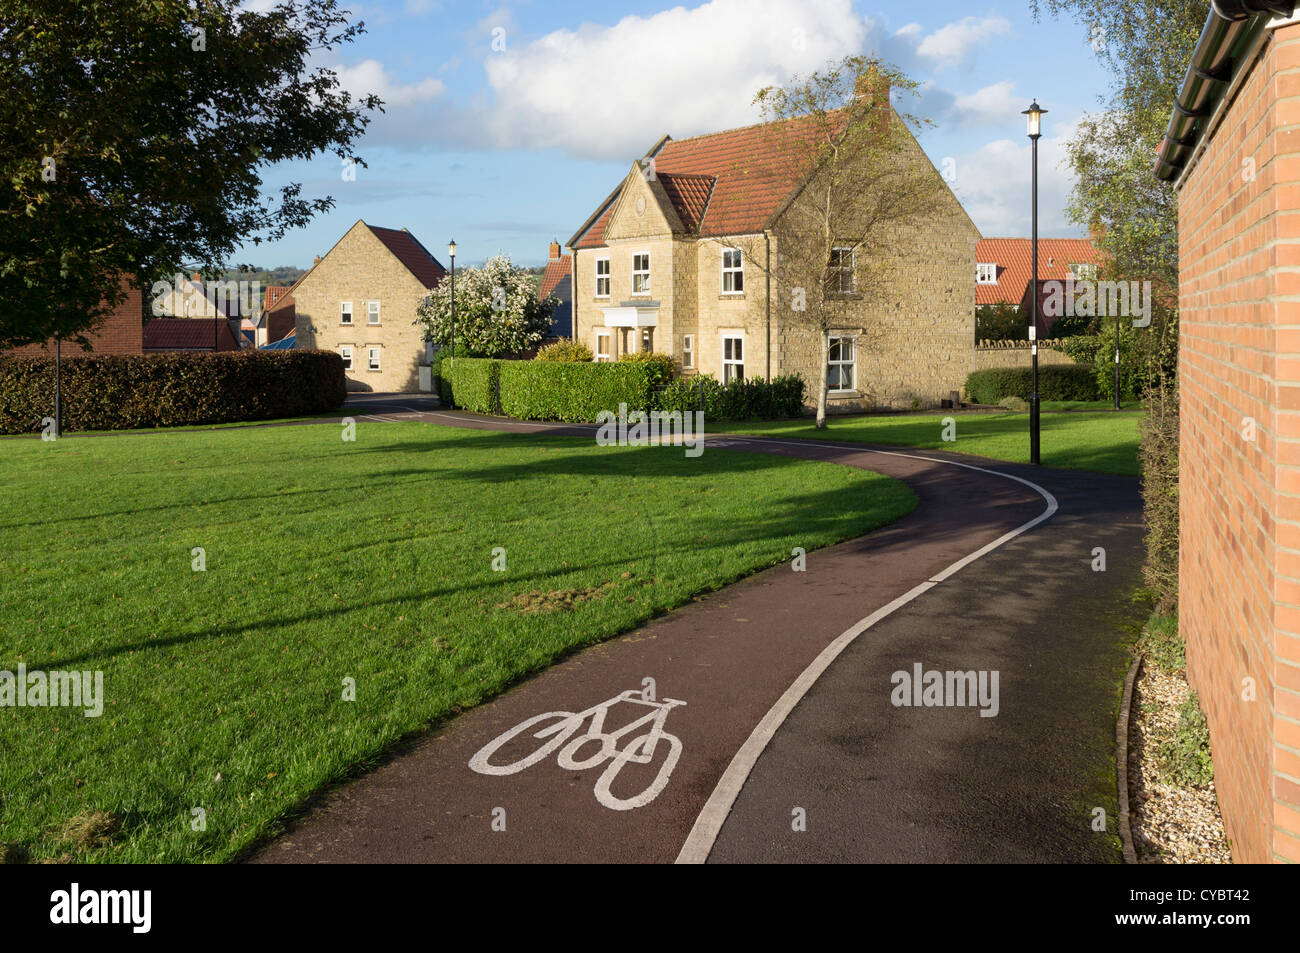 Cycle path through a housing development, England, UK - Stock Image